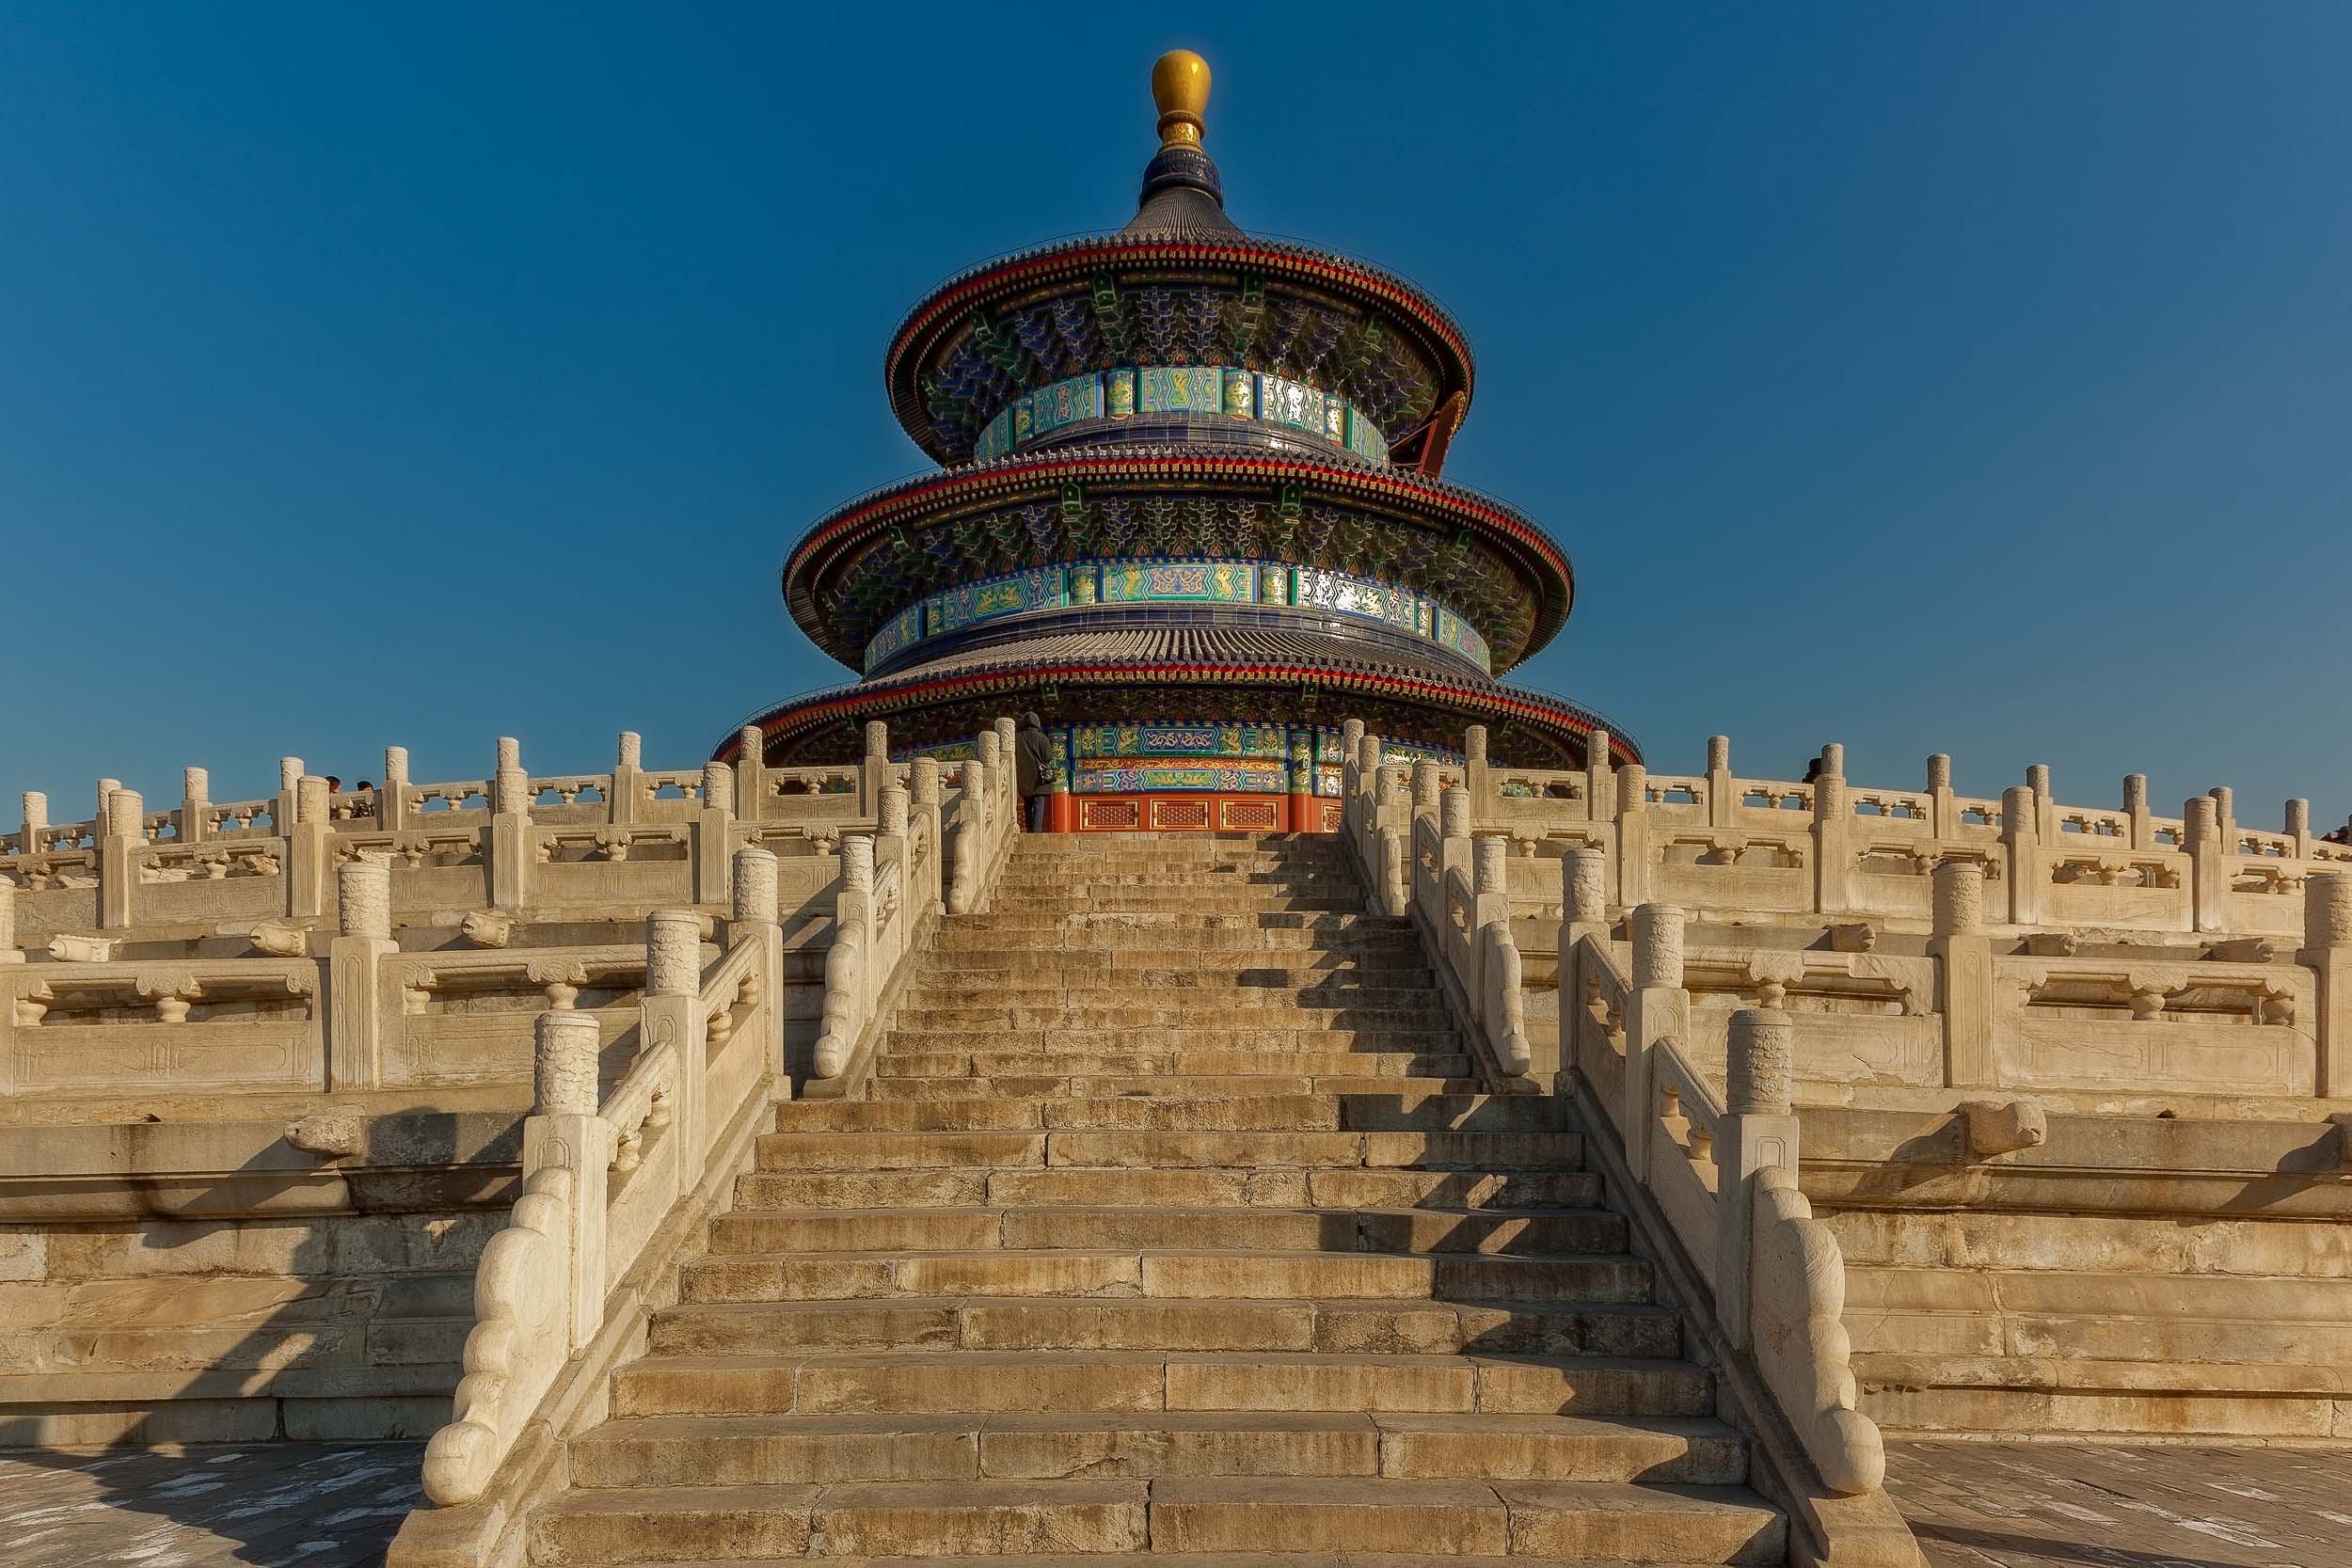 A view up a flight of stairs to a beautiful    architectural structure    in the grounds of the    Temple Of Heaven    in    Beijing, China   .